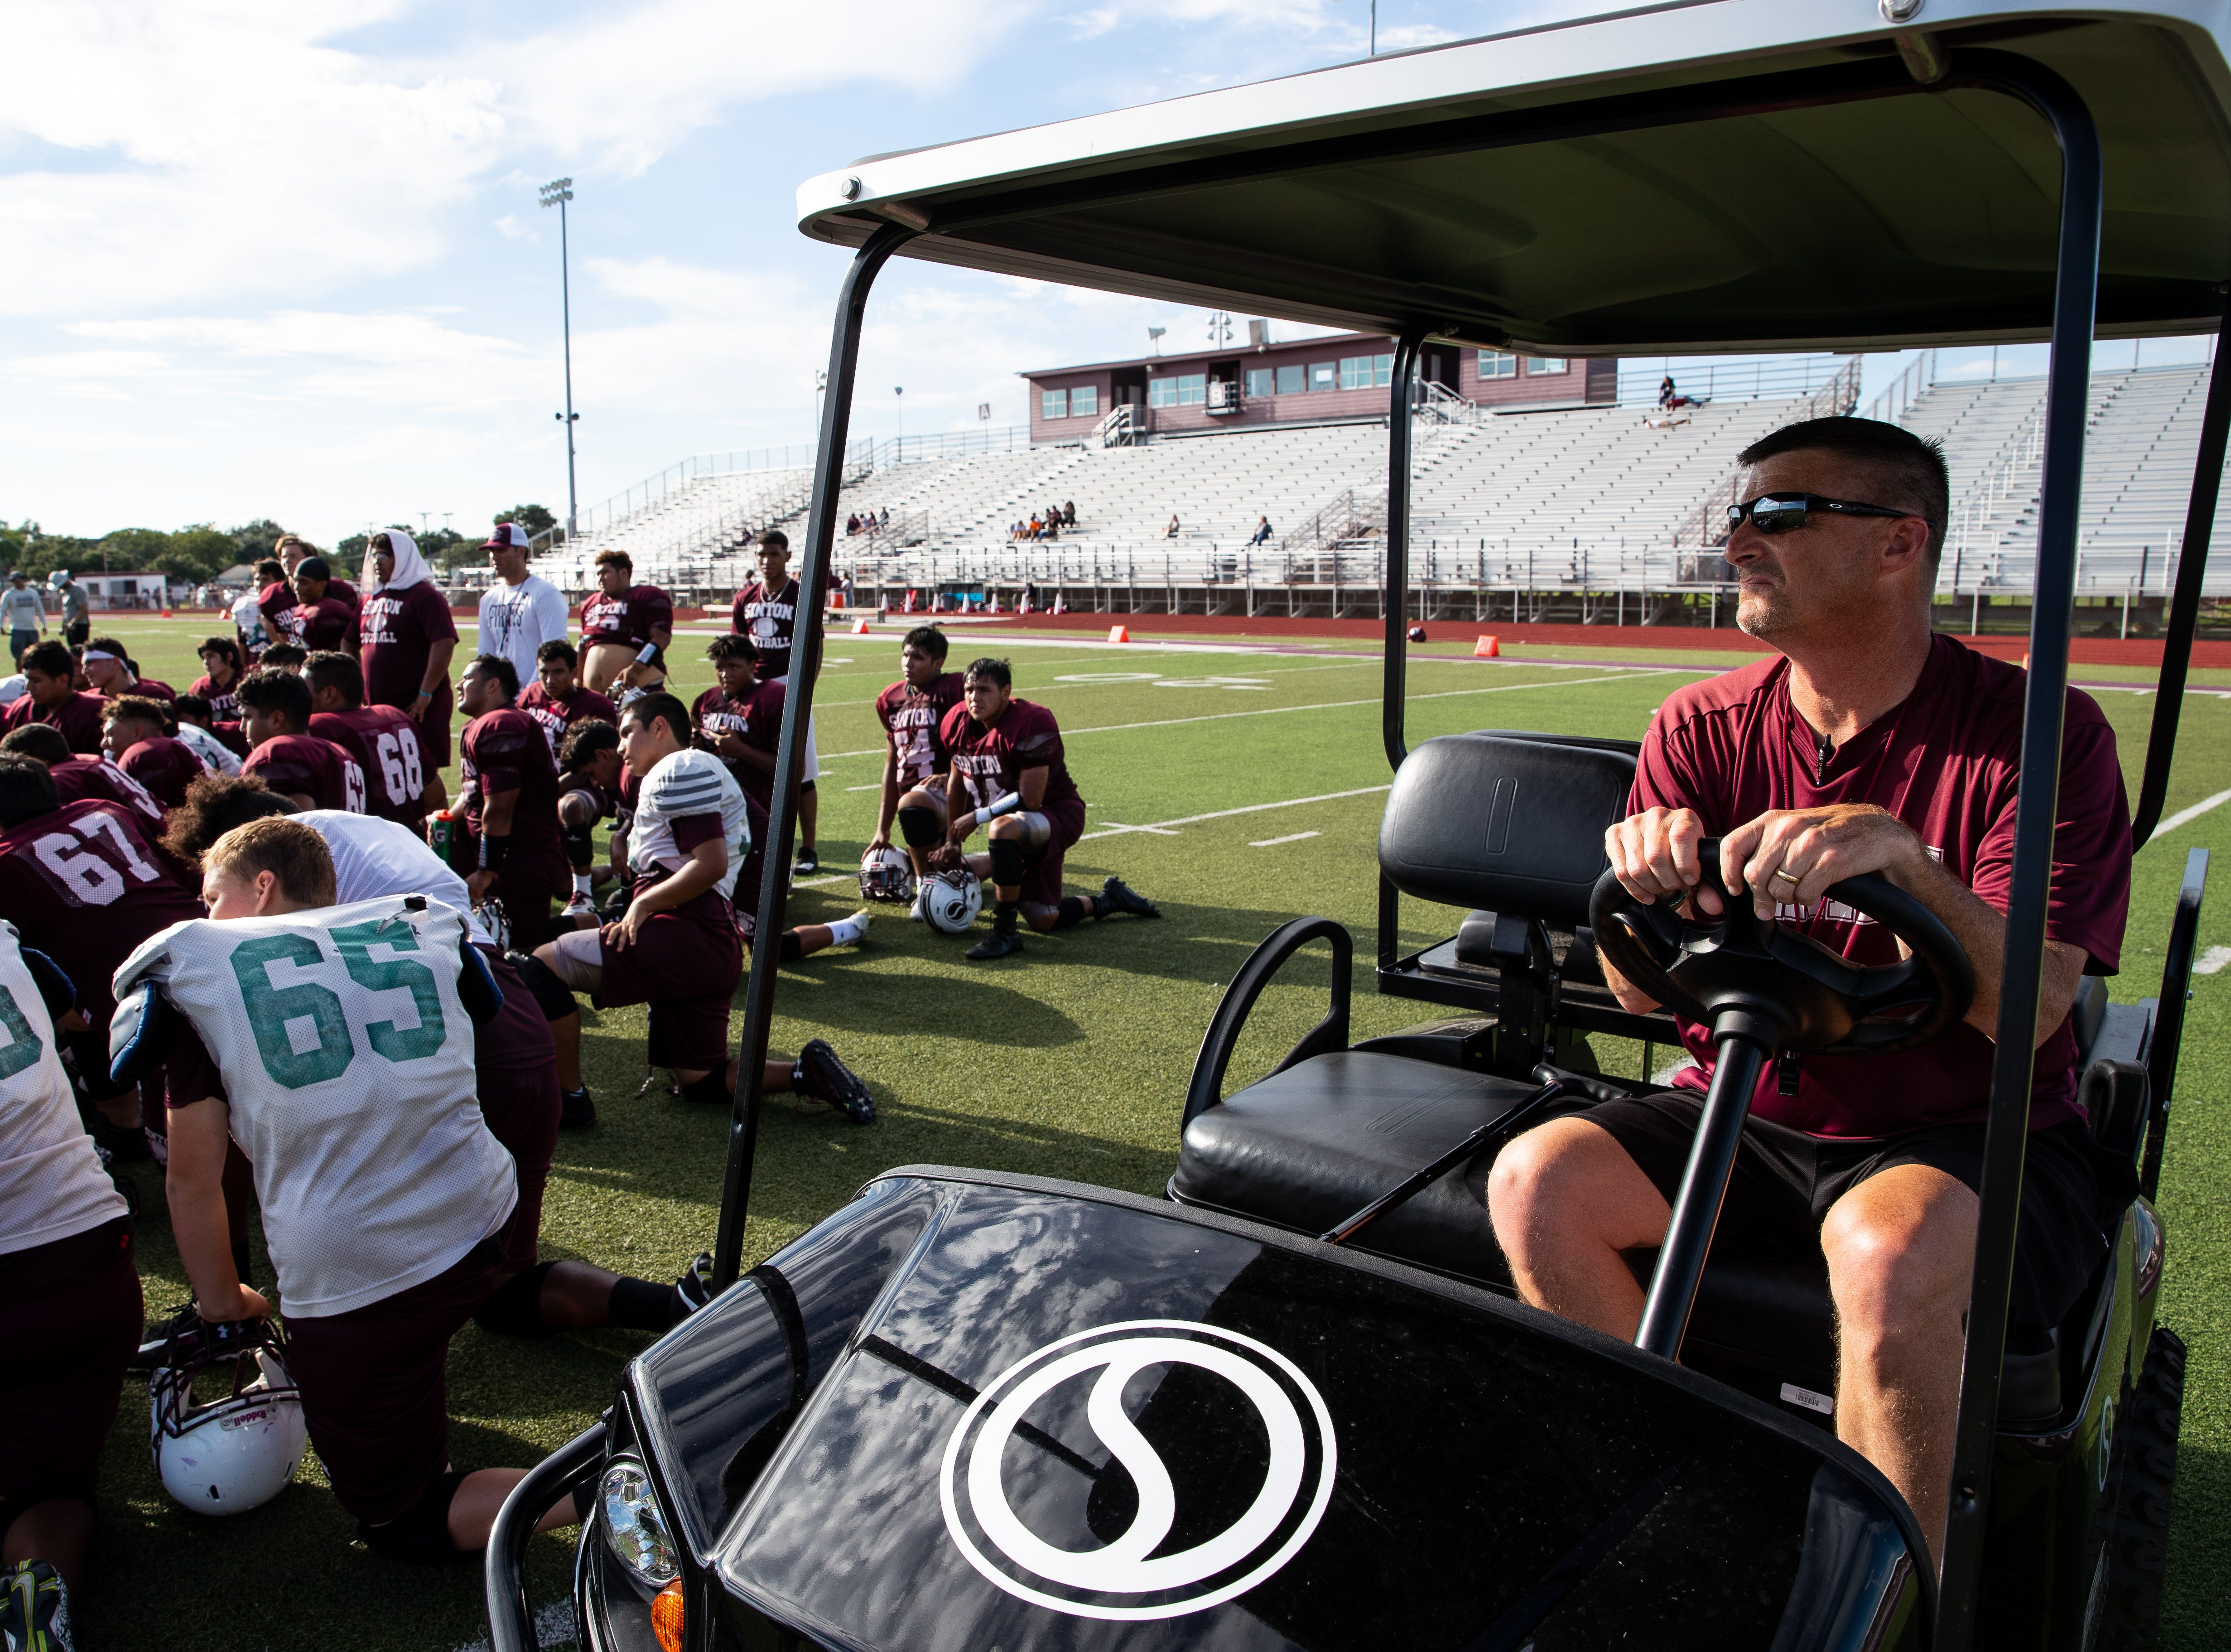 Tom Allen head coach of the Sinton football team sits in his cart as the teams huddles after running plays on the field during practice at Sinton High School on Tuesday, Sept. 18, 2018. Allen is suffering from a rare neurological disease that has him in a cart during games and practices